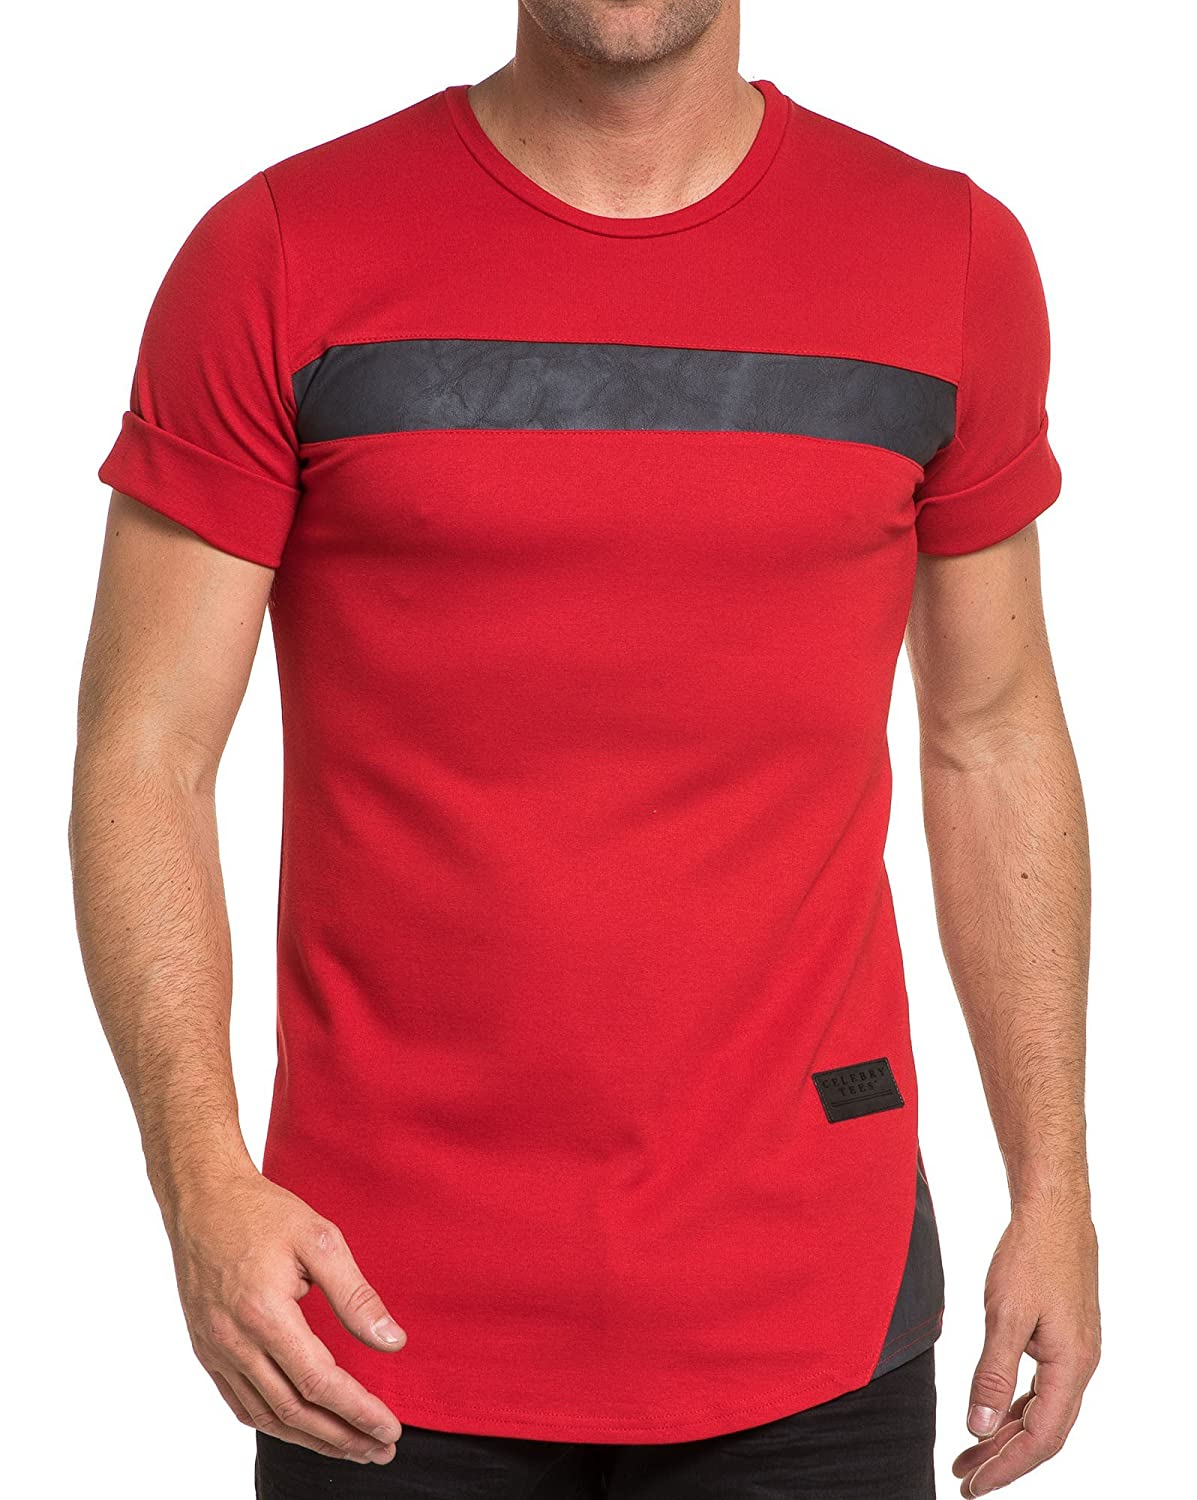 Celebry tees - T-shirt red man and black leather band effect